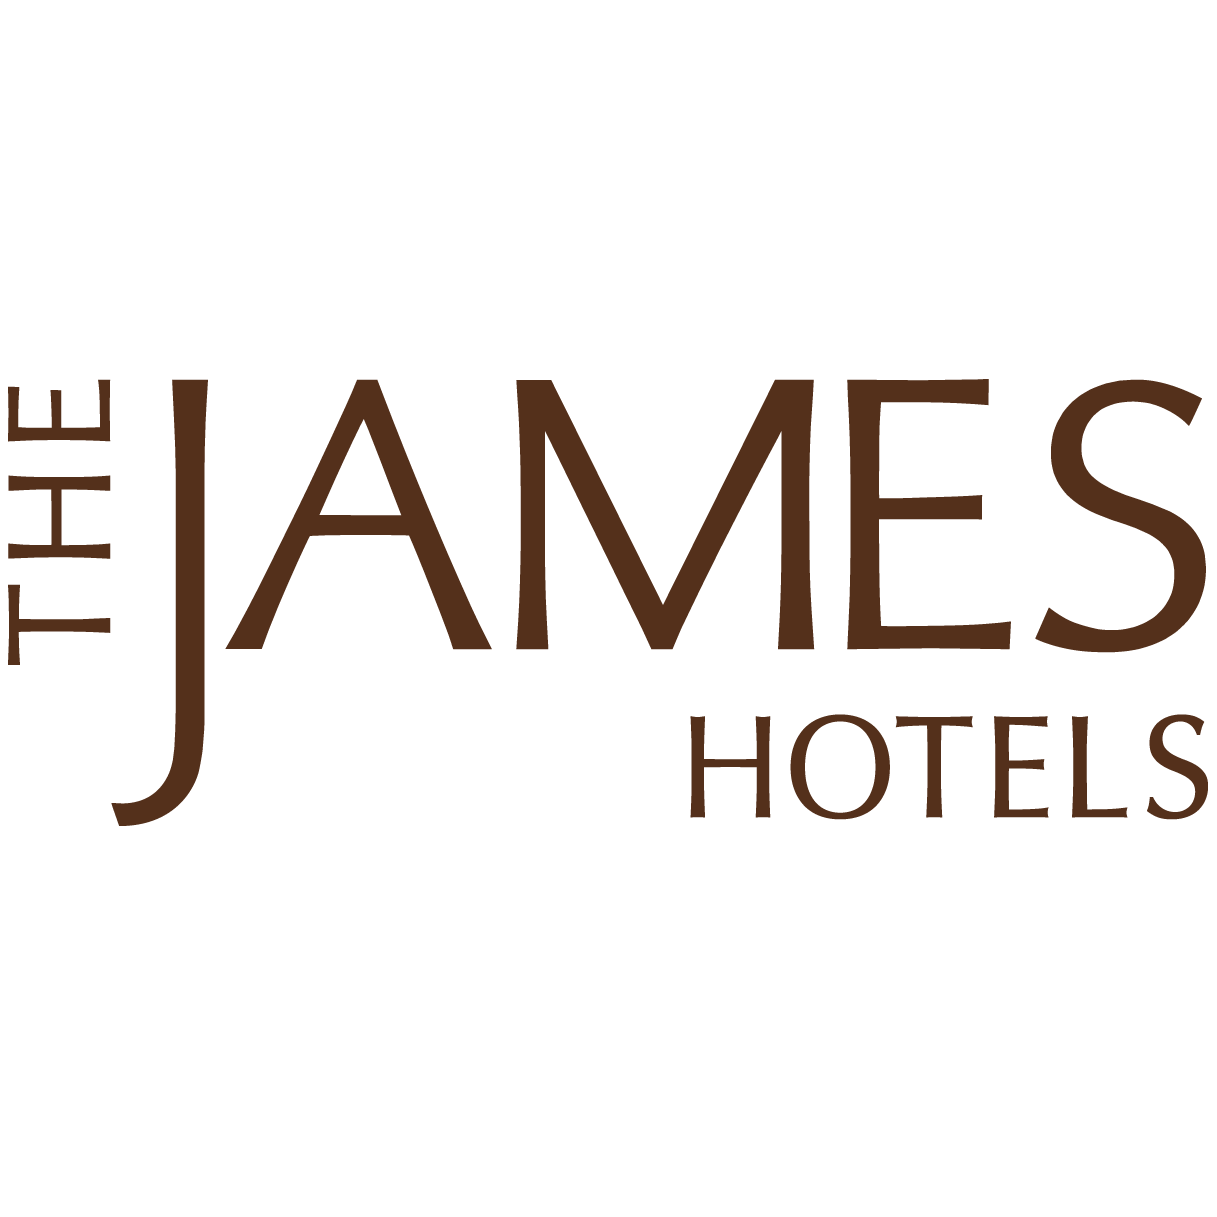 The James Chicago